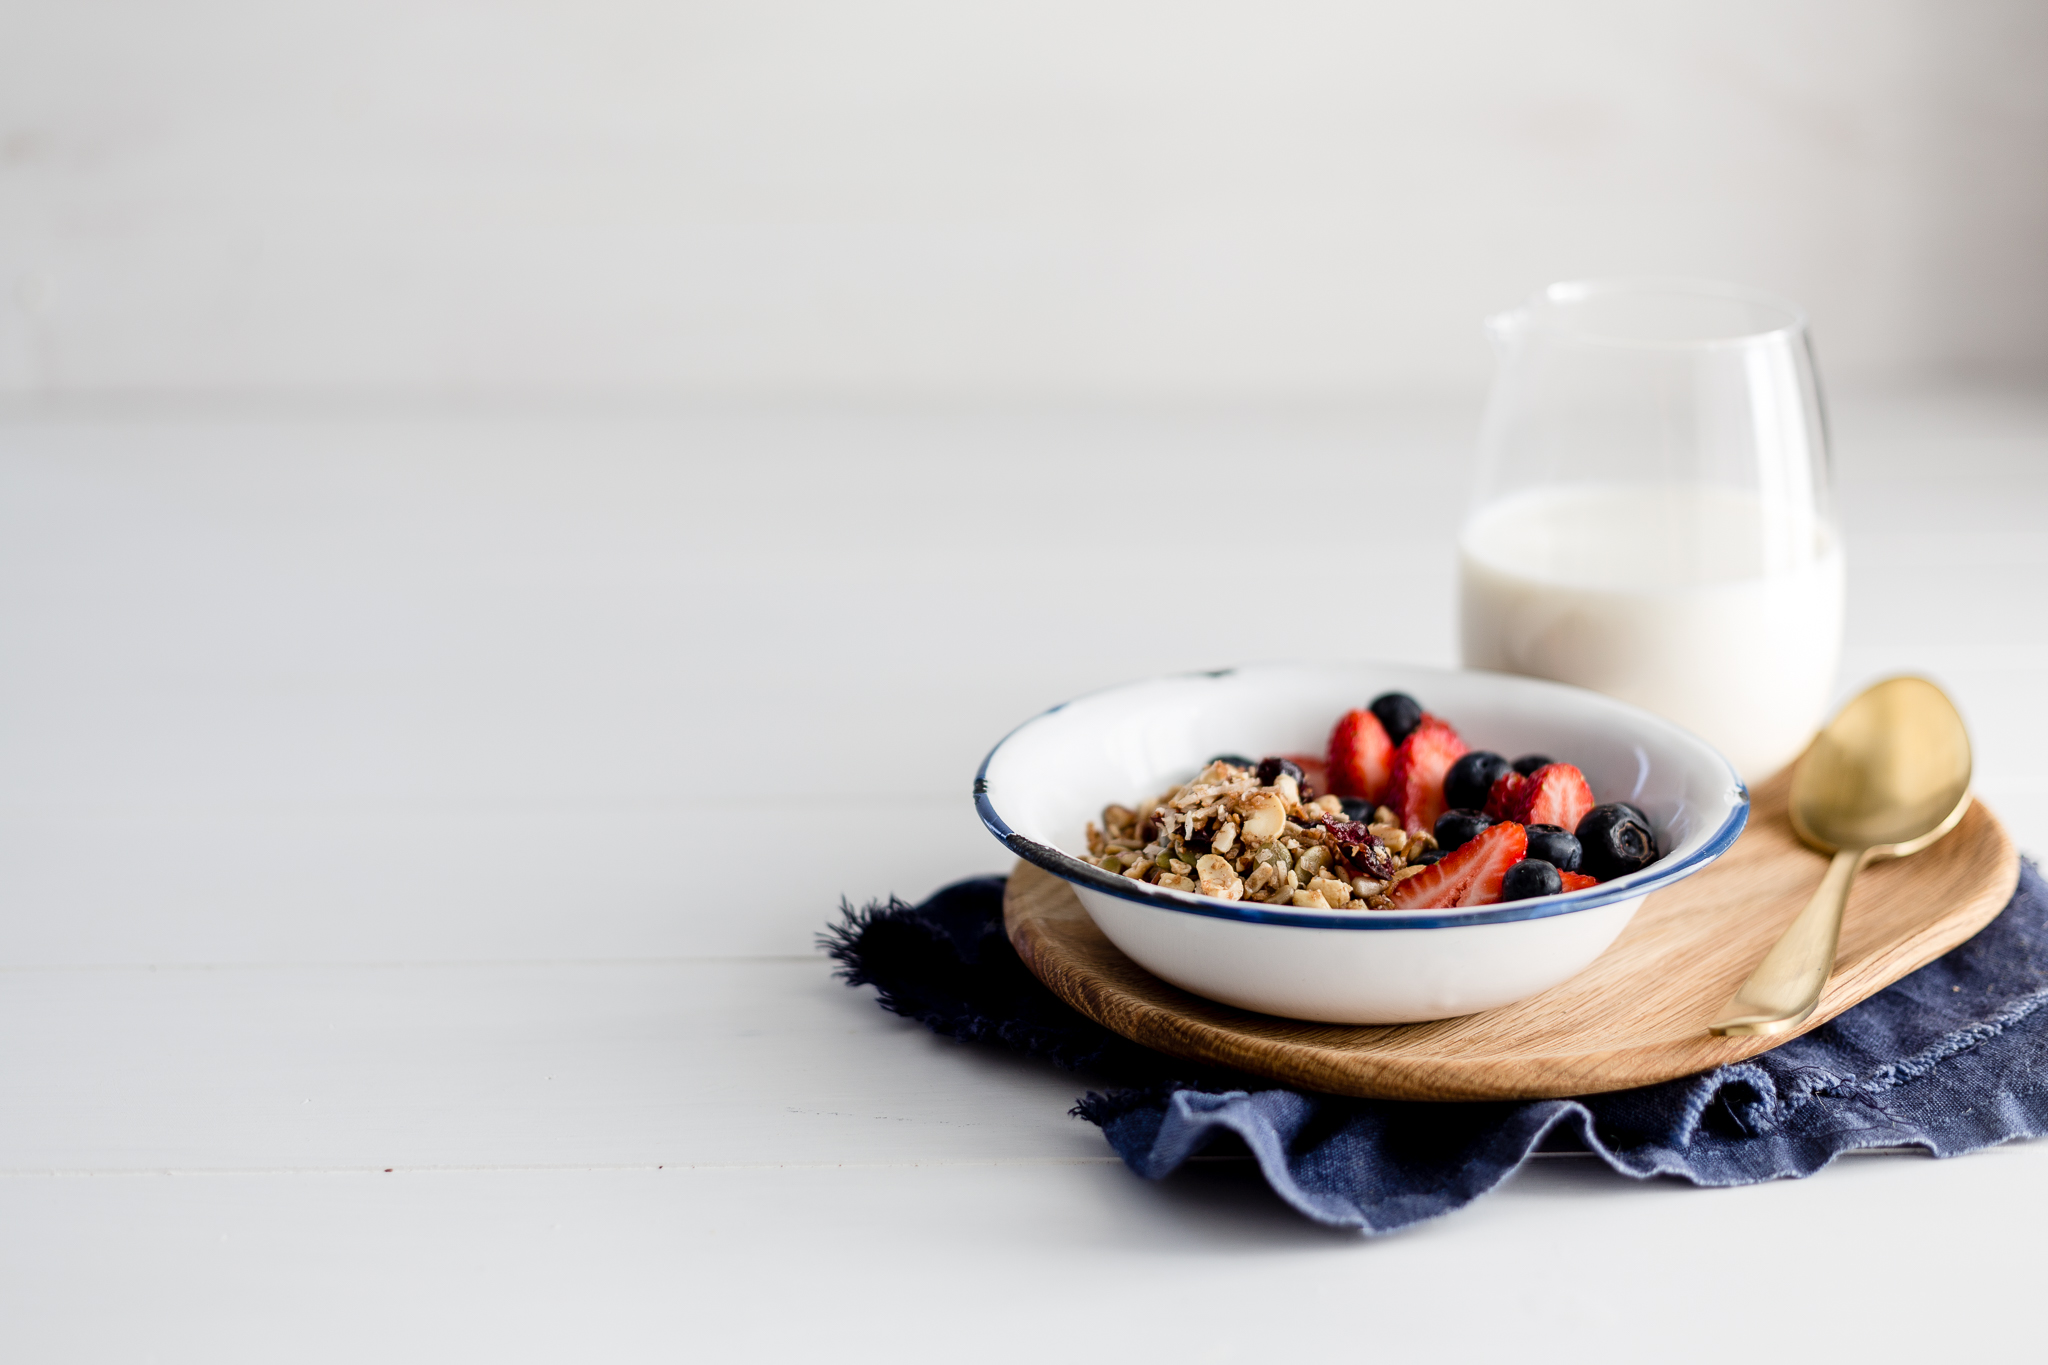 margaretriver-perth-food-photographer-stocked-foods-gluten-free-granola-2